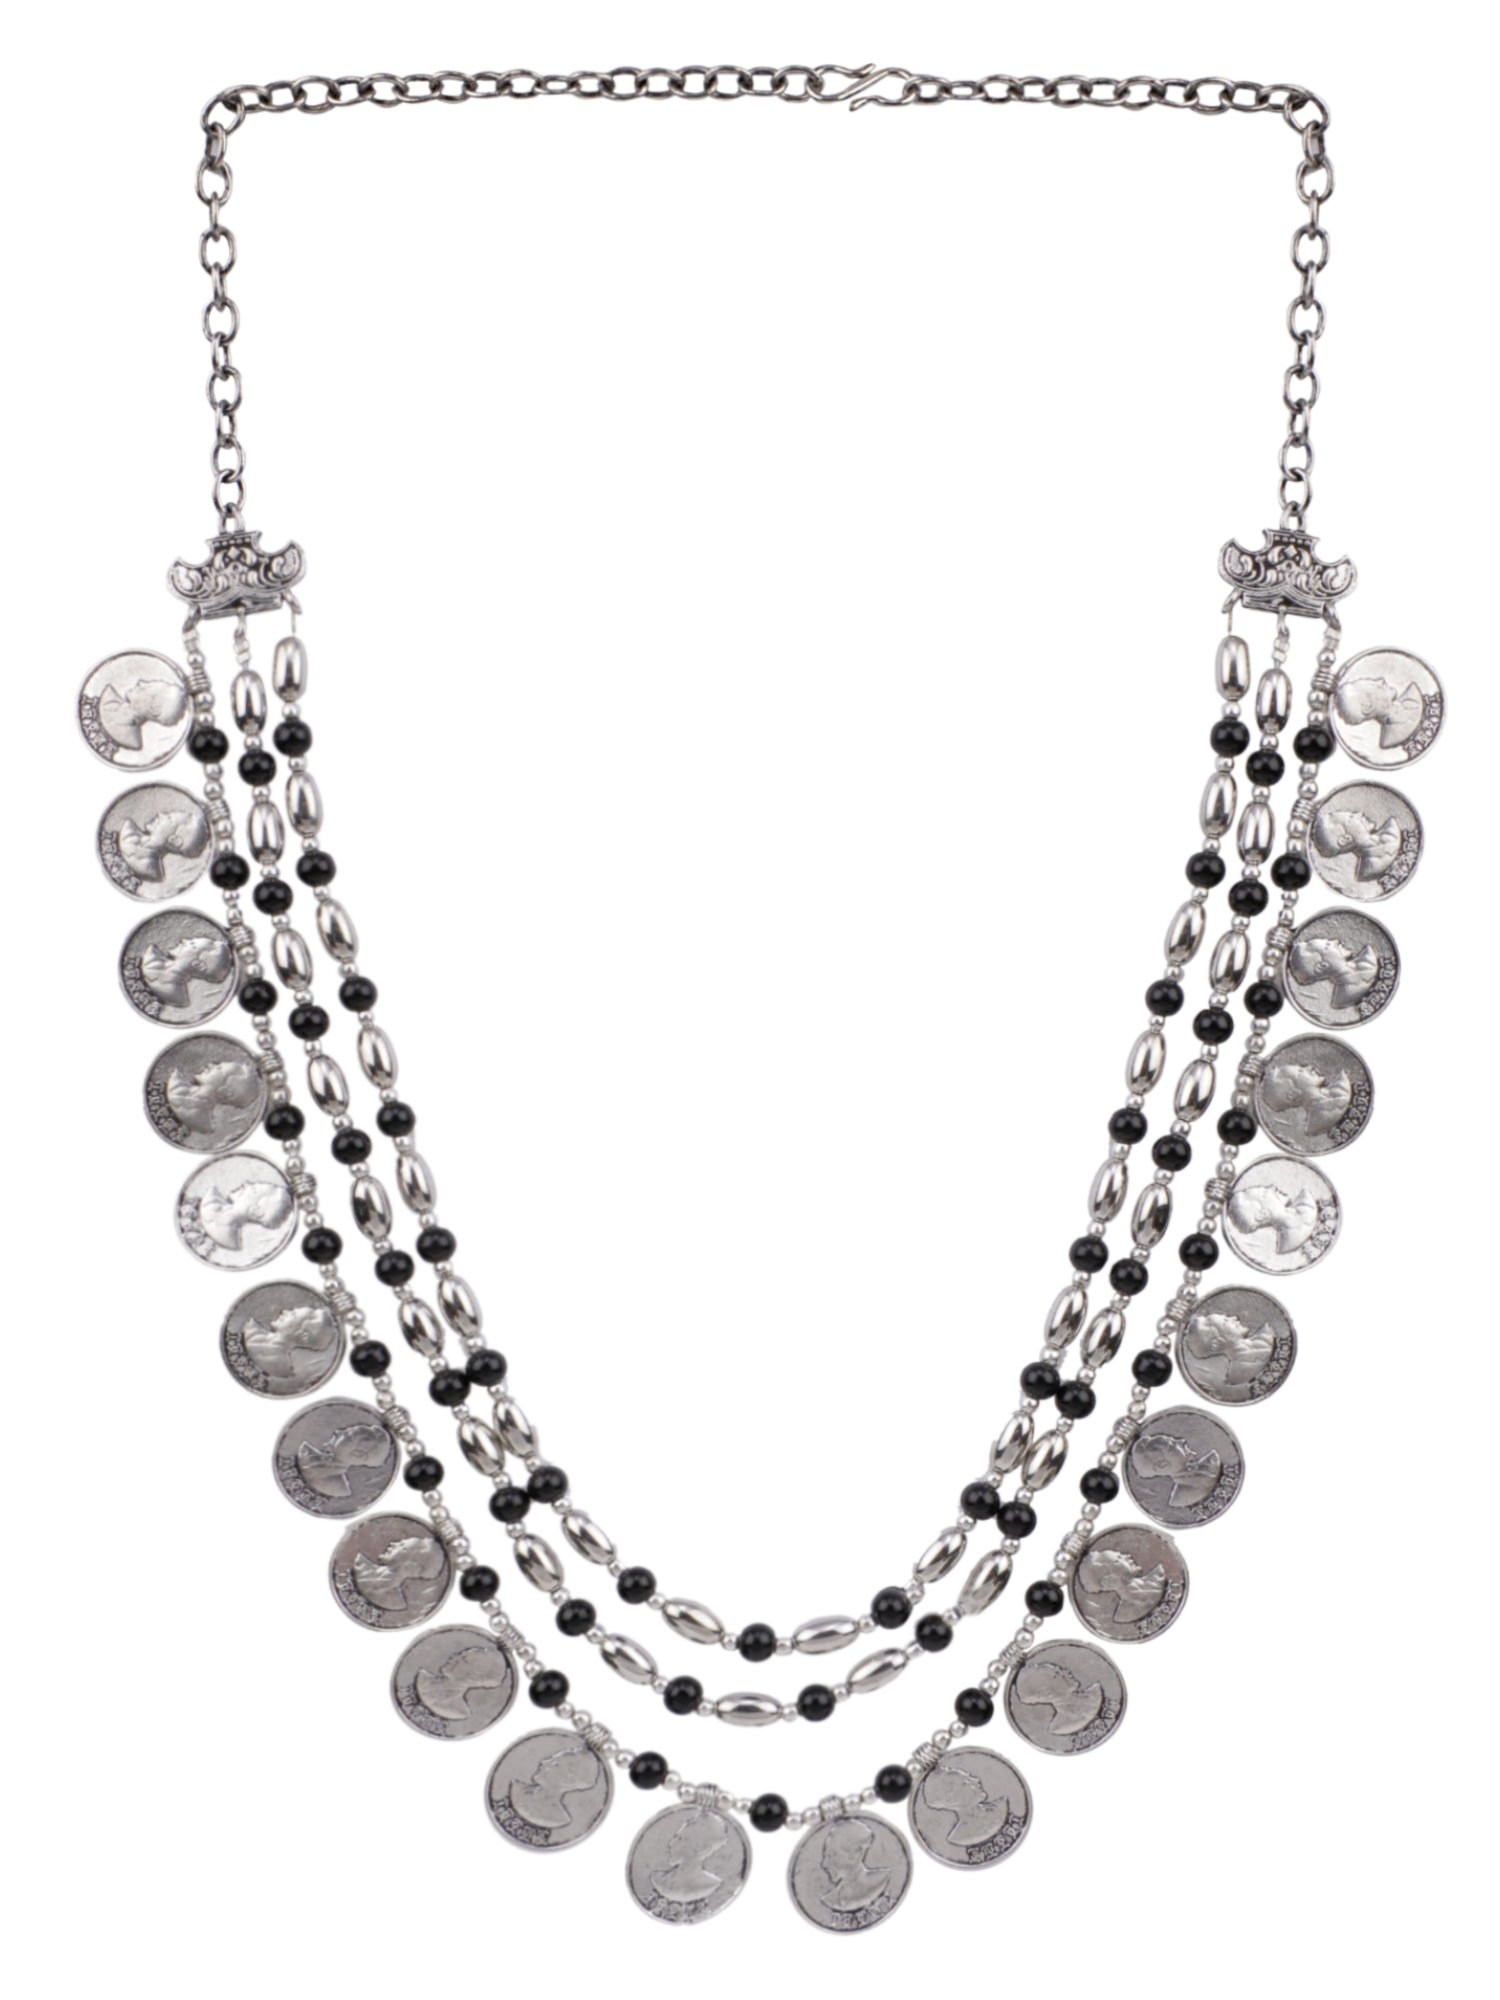 Efulgenz Multilayered Coin Boho Vintage Antique Ethnic Gypsy Tribal Indian Oxidized Silver Beaded Tassels Statement Necklace Jewelry